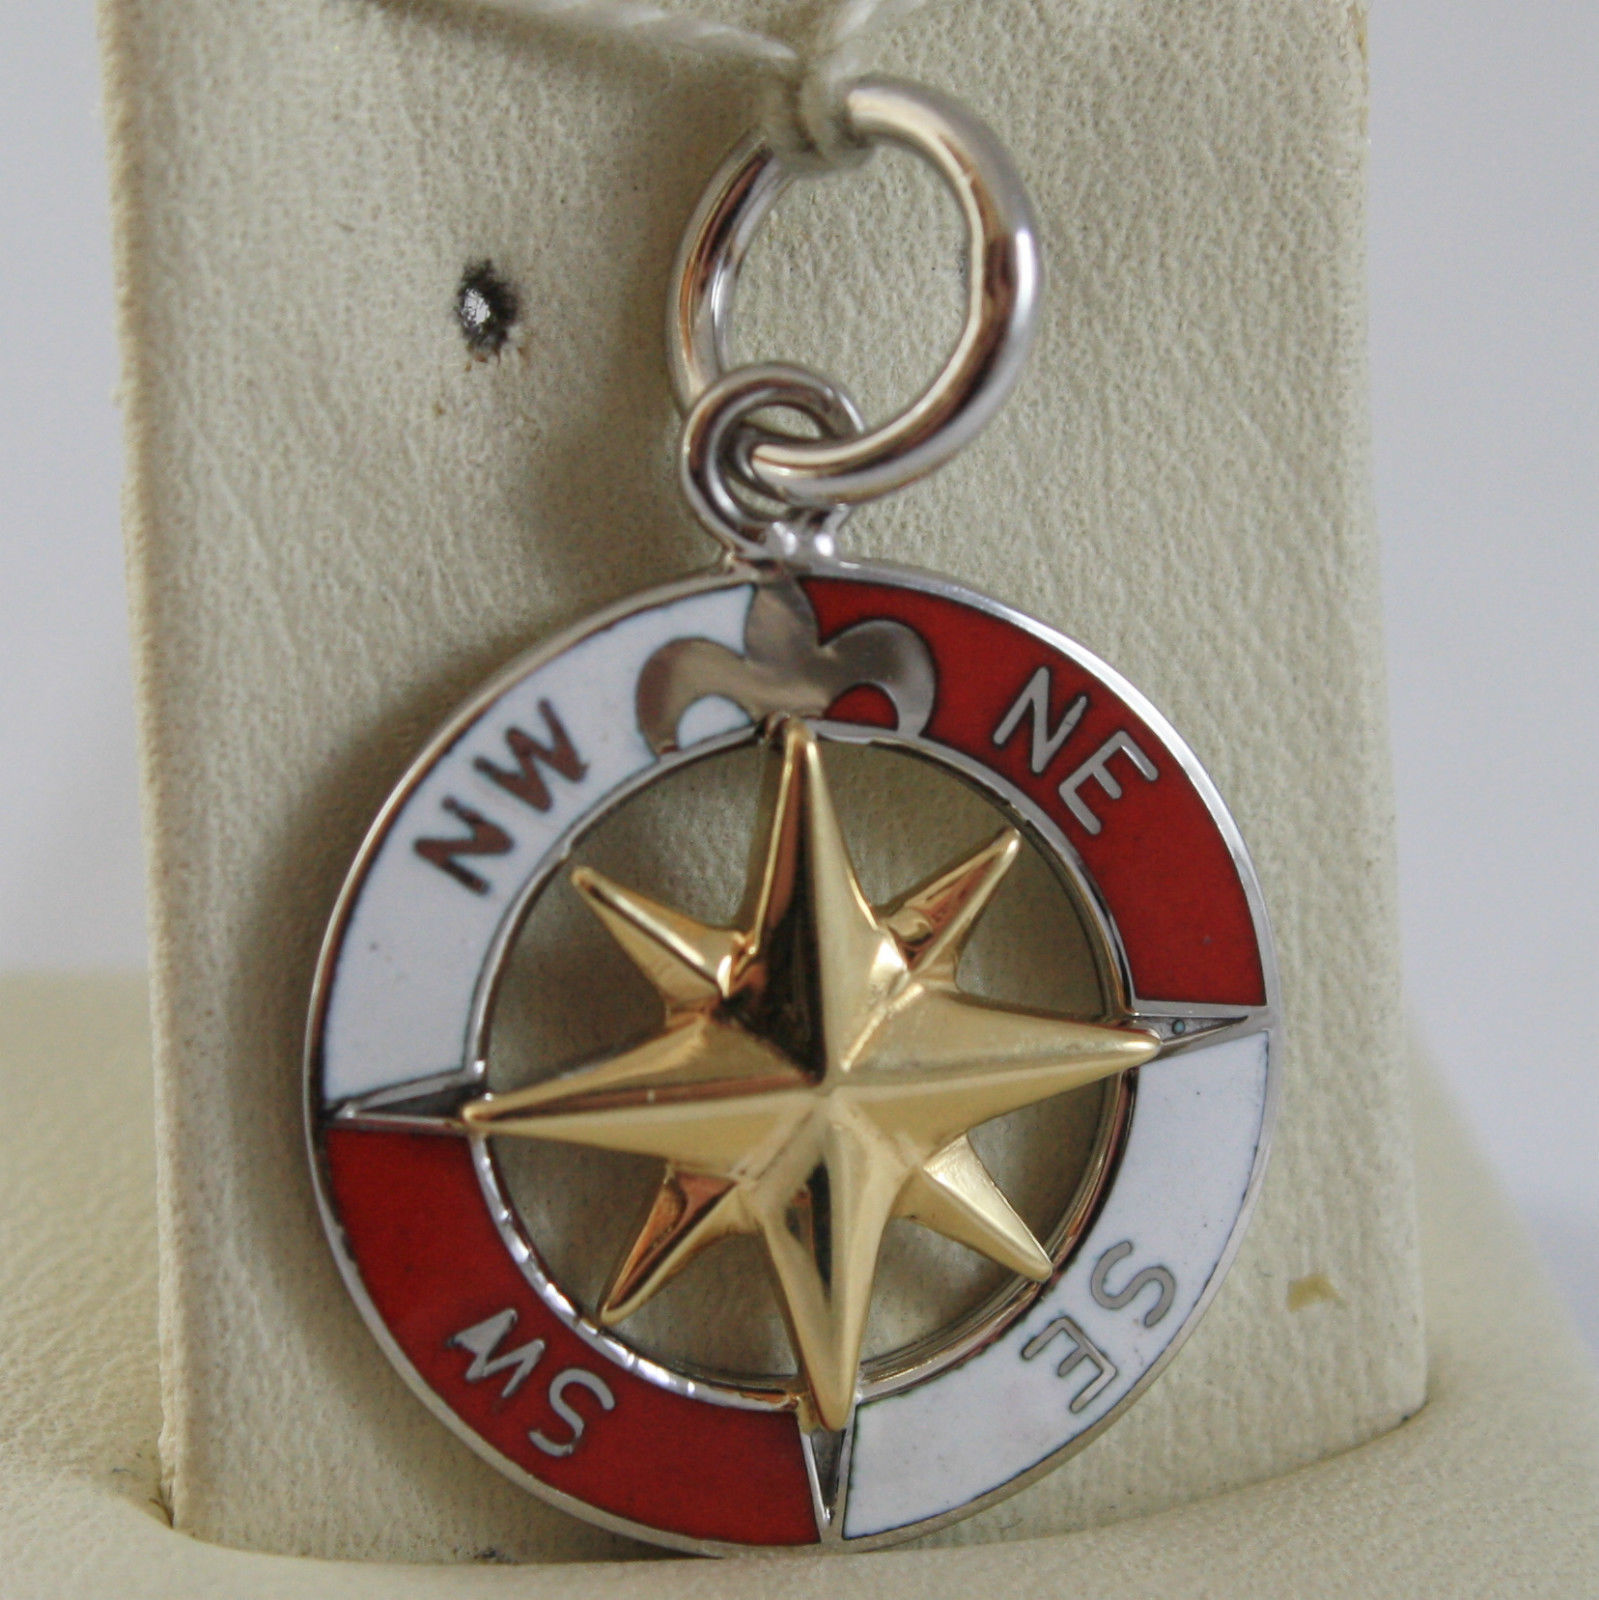 SOLID 18K WHITE AND YELLOW GOLD PENDANT, WIND'S COMPASS, GLAZED WIND ROSE